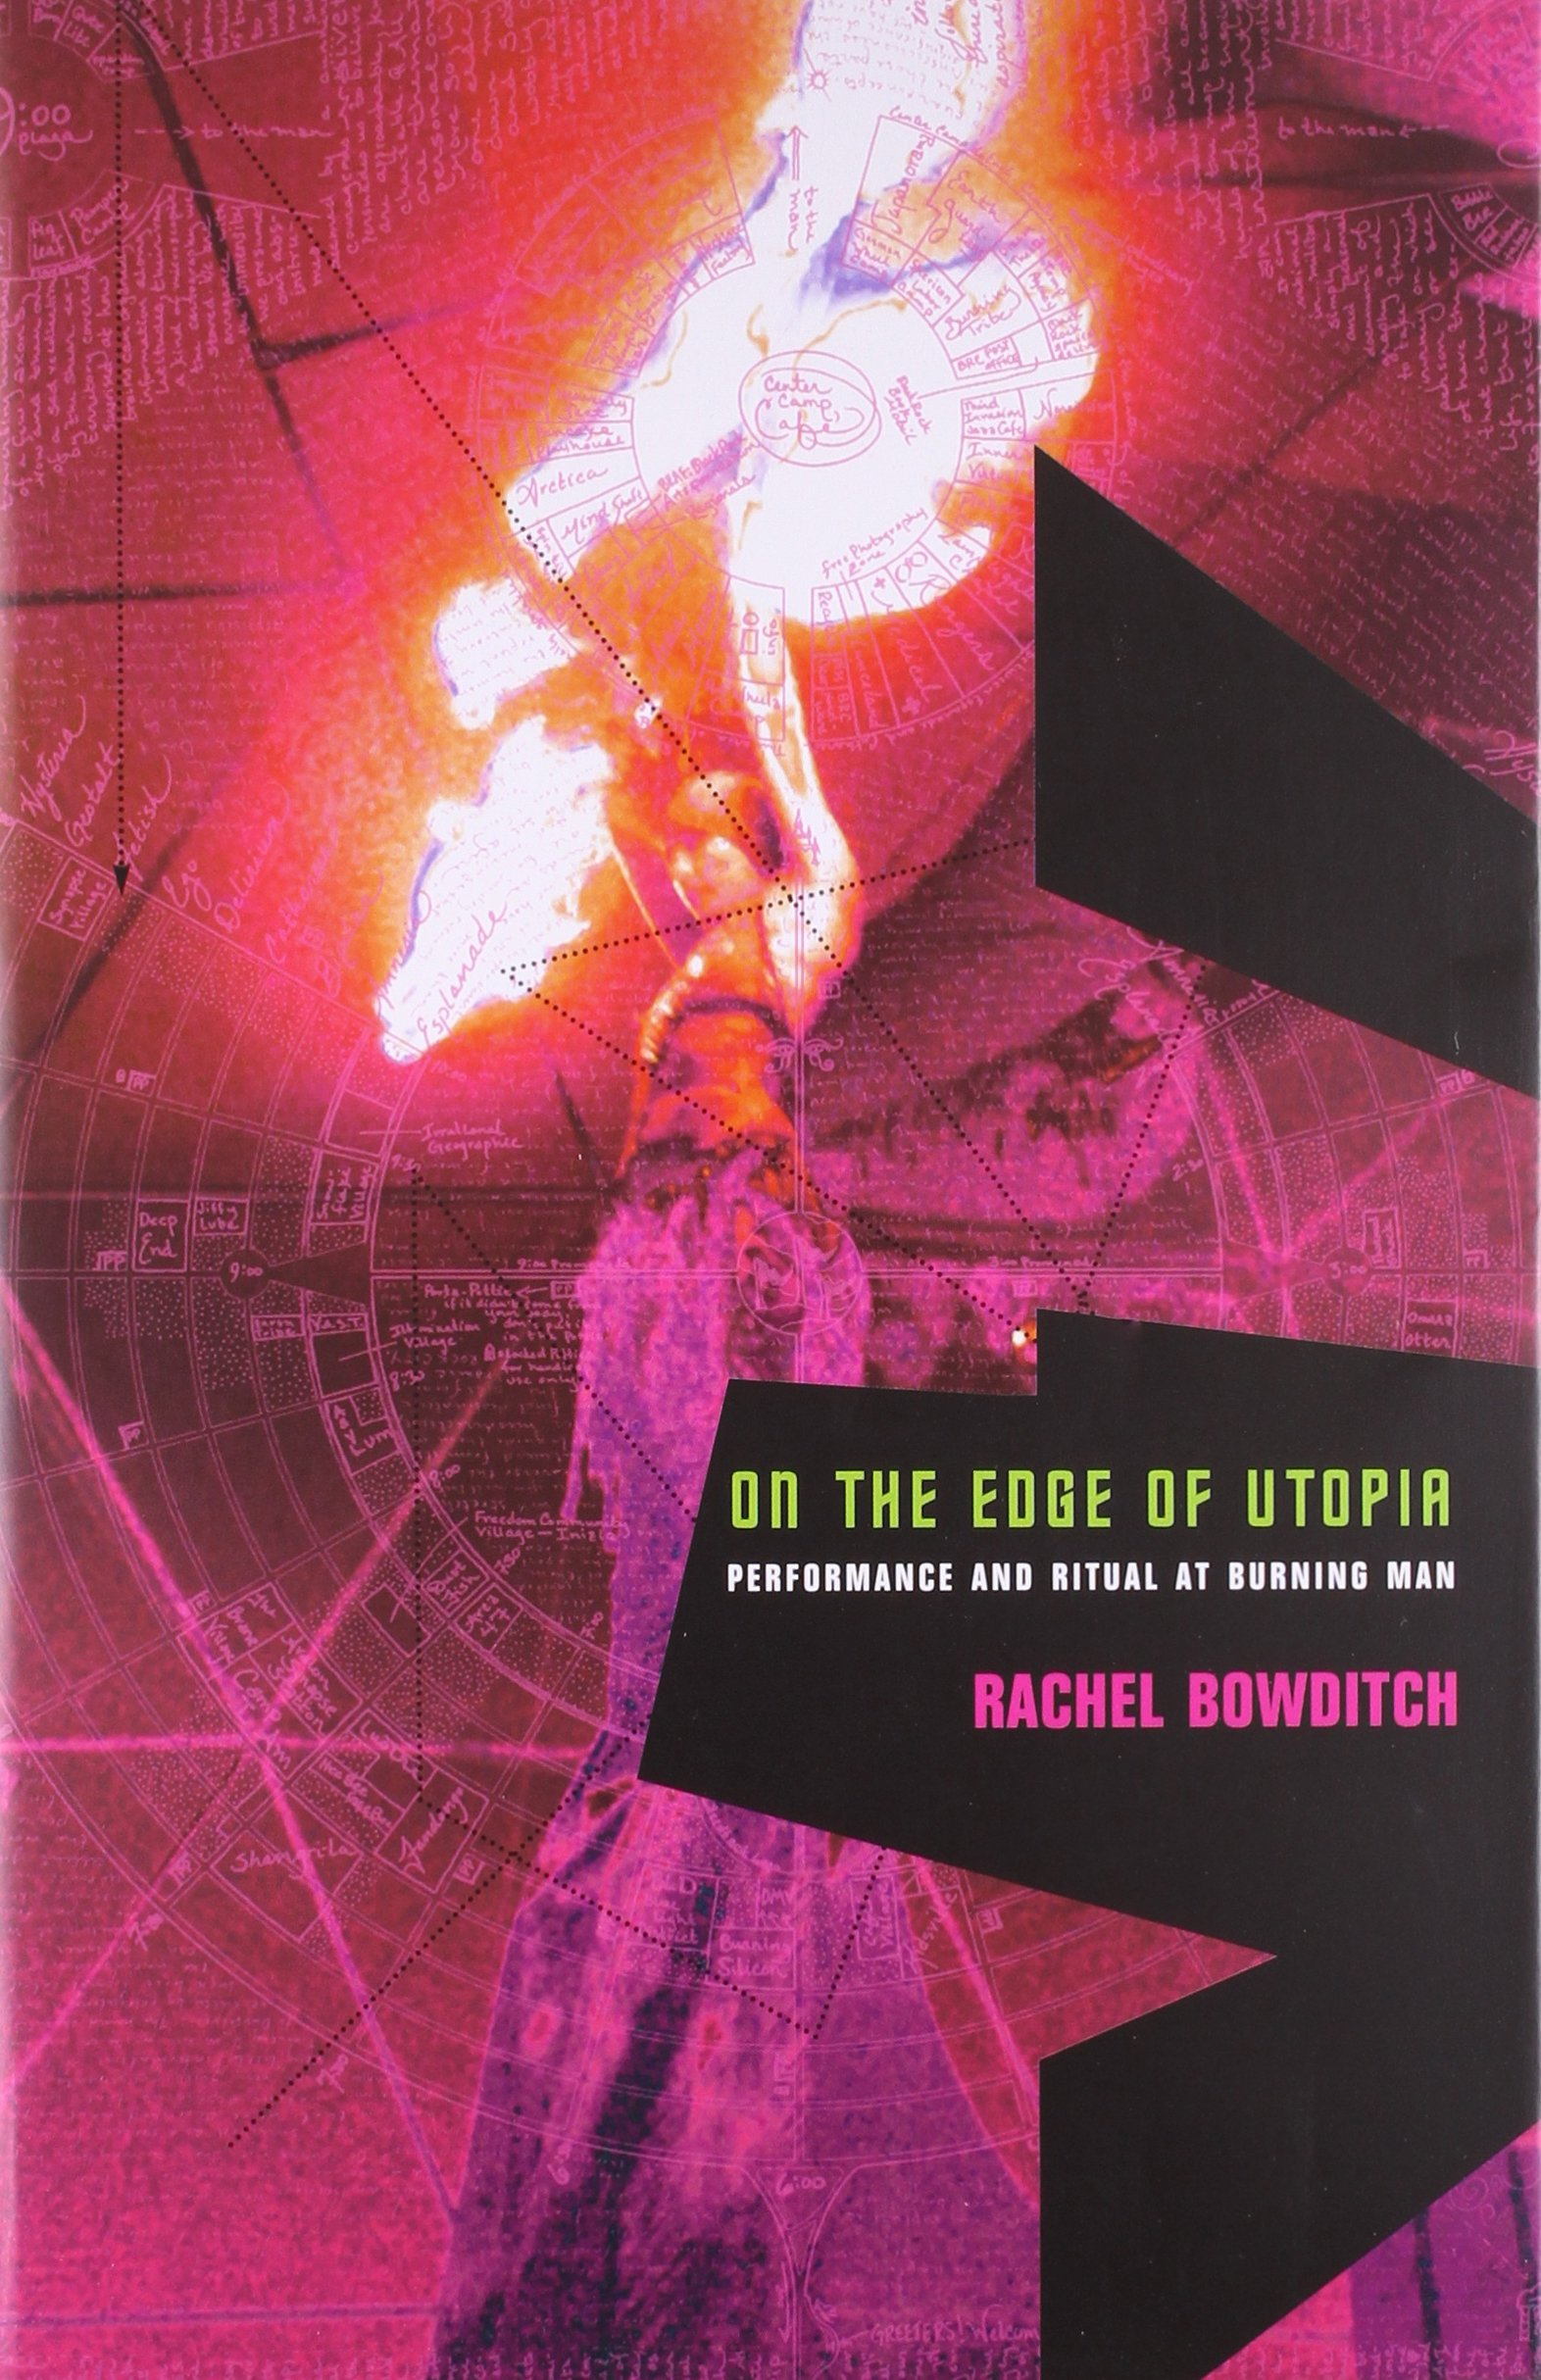 On the Edge of Utopia: Performance and Ritual at Burning Man (Enactments)